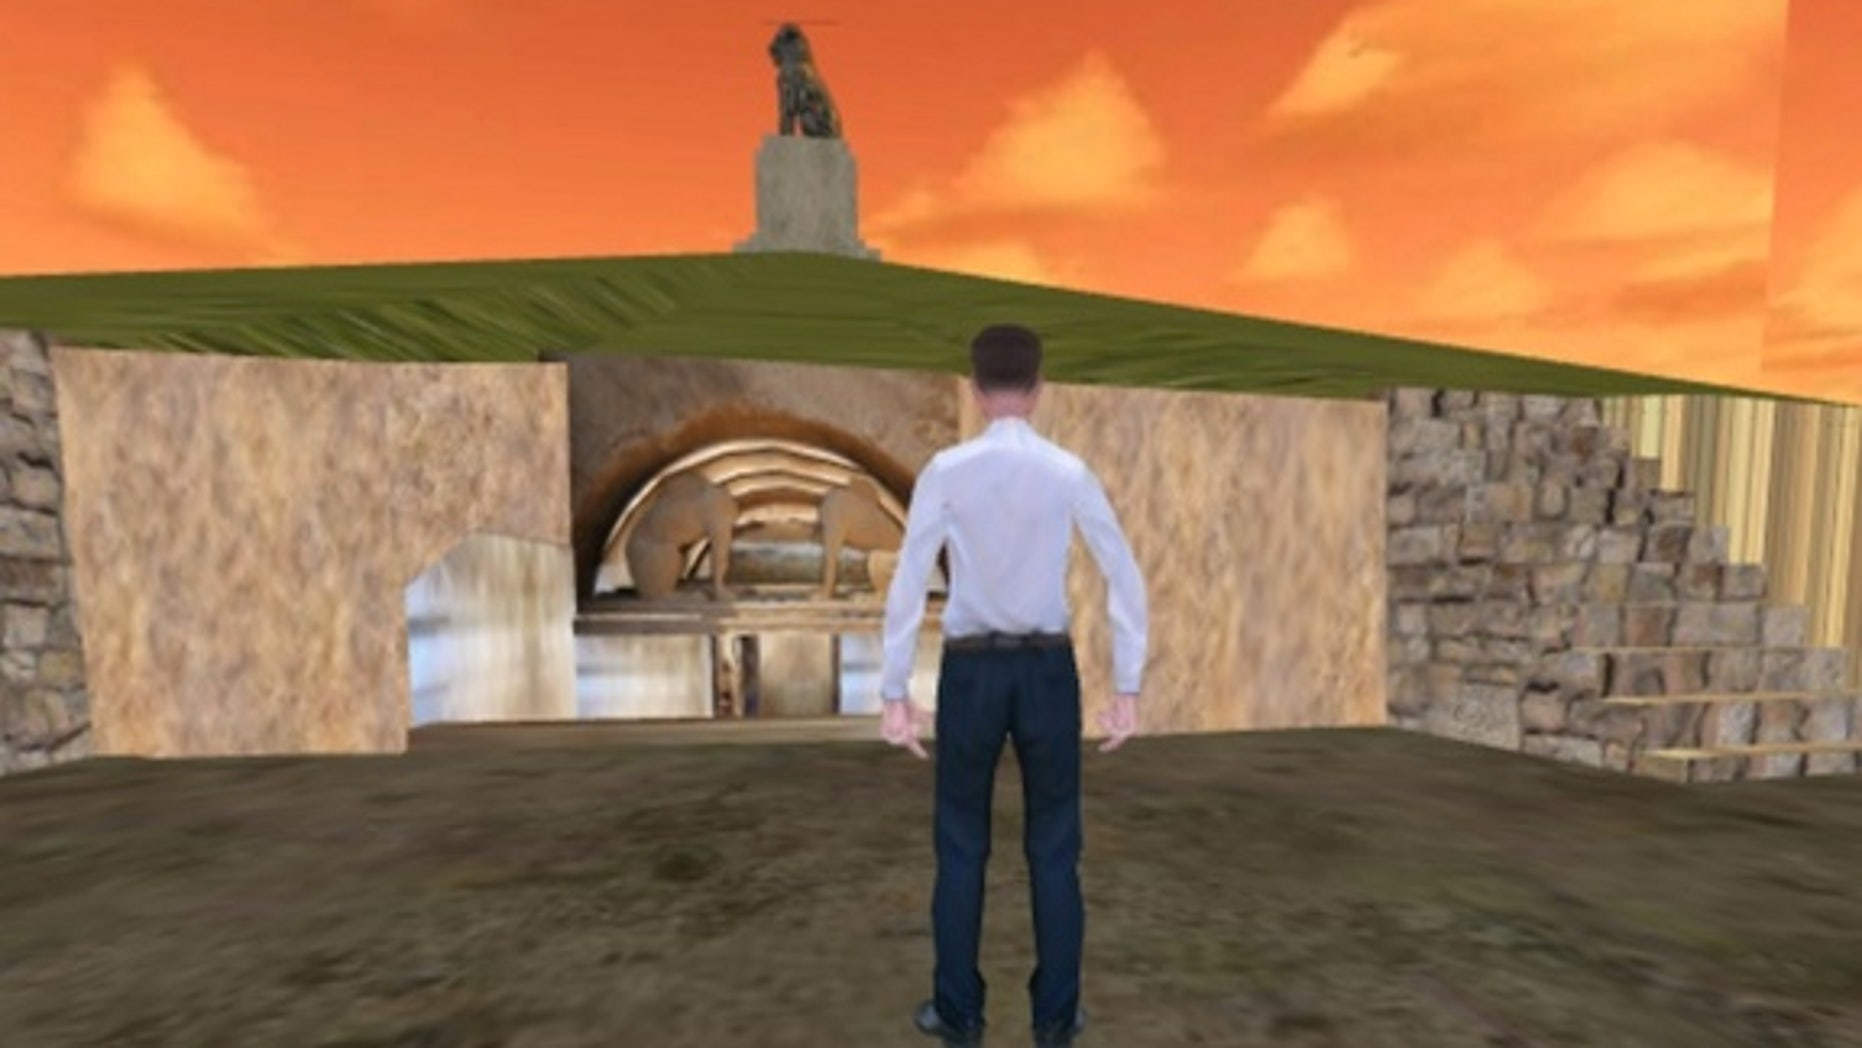 Taking some aesthetic cues from a mid-1990s video game, an interactive reconstruction on amfipoli-news.com lets users move through the tomb with an avatar.